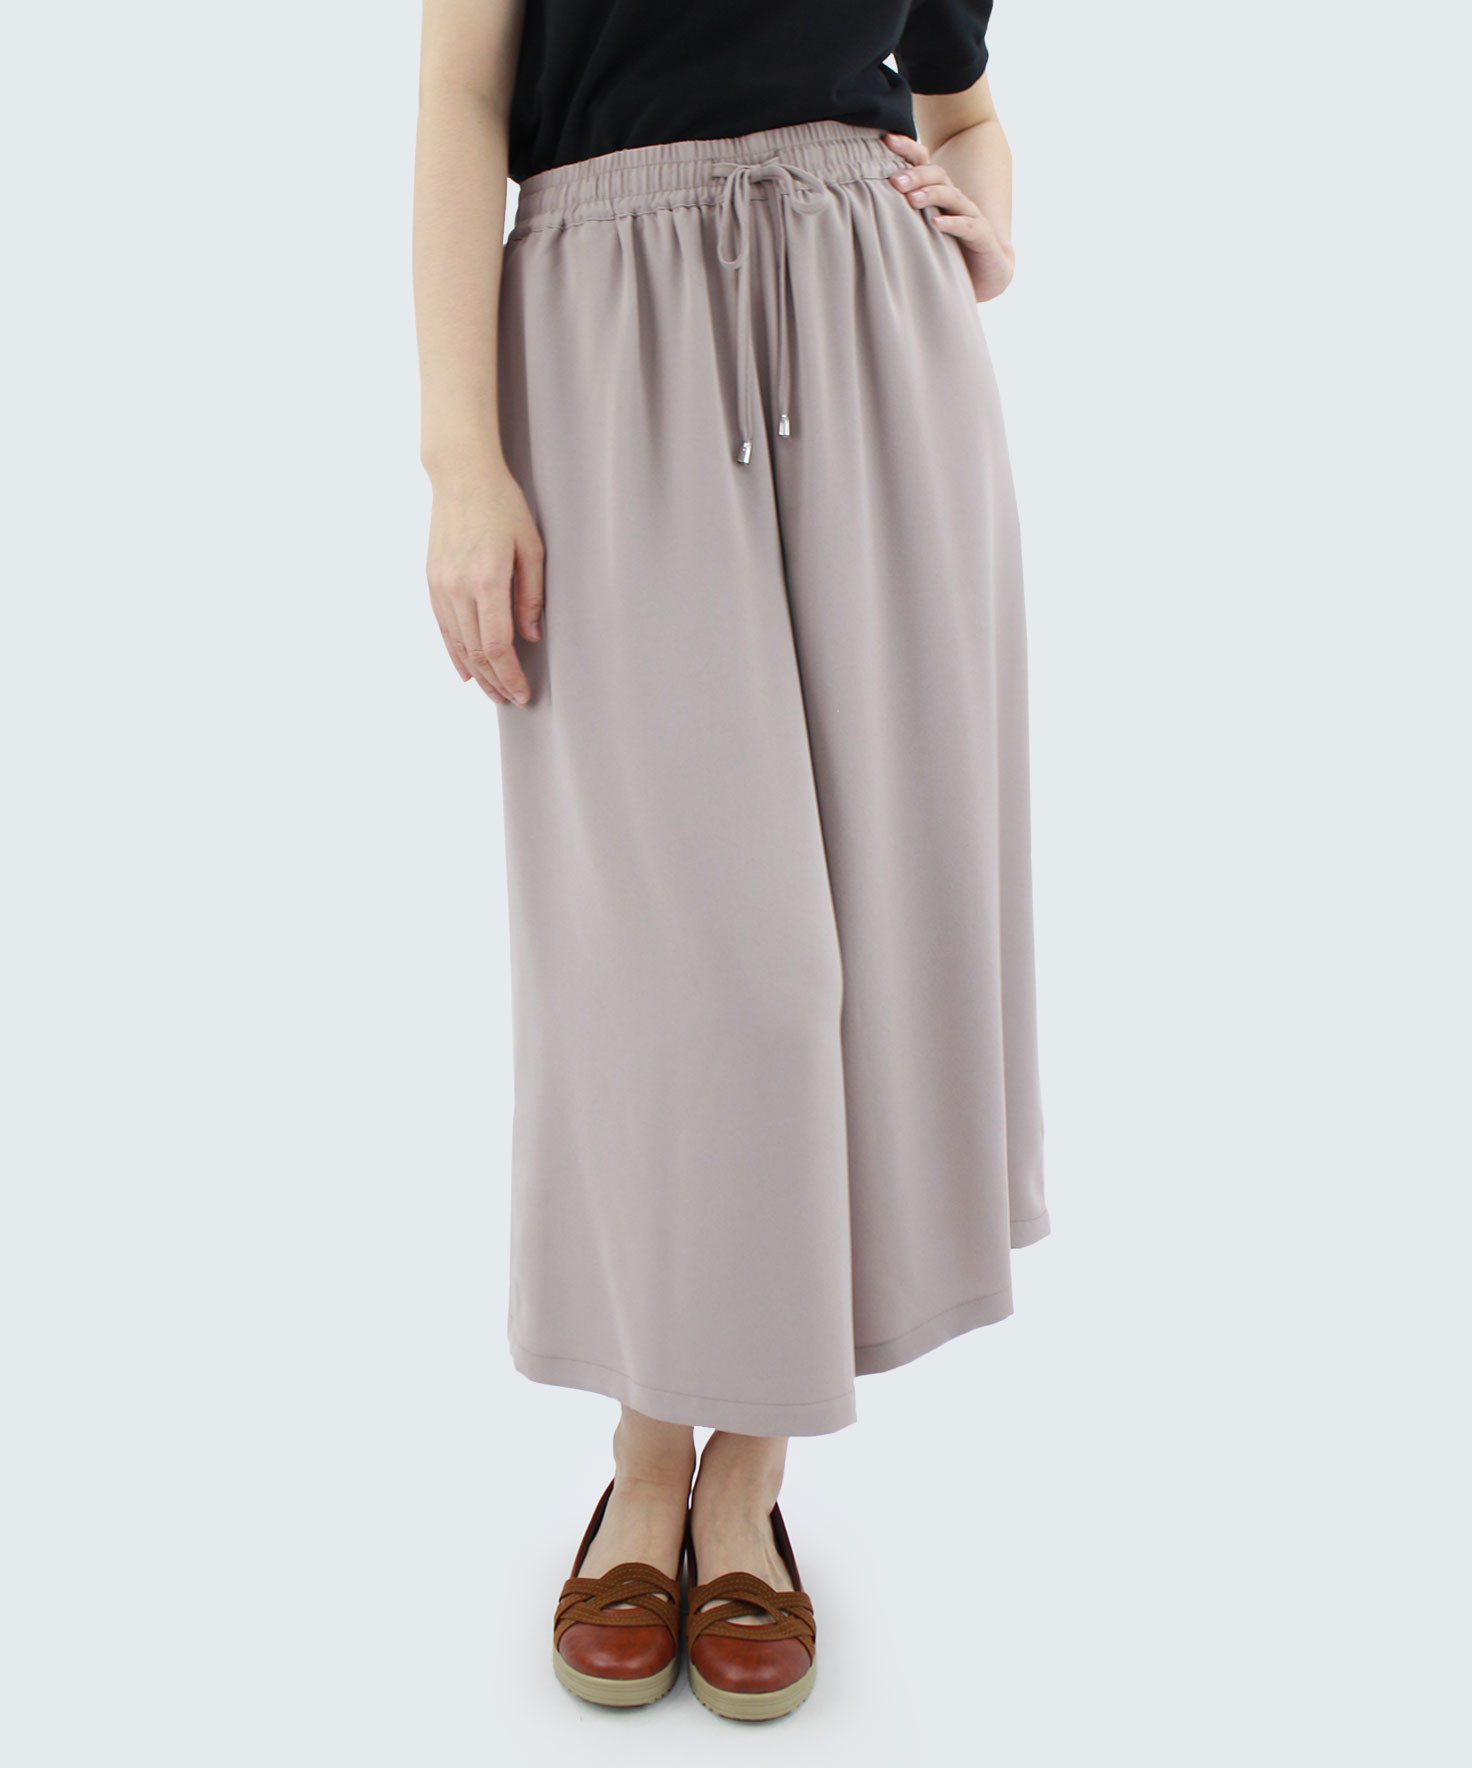 Long Pants Minimal Woman Polyester With Elastic